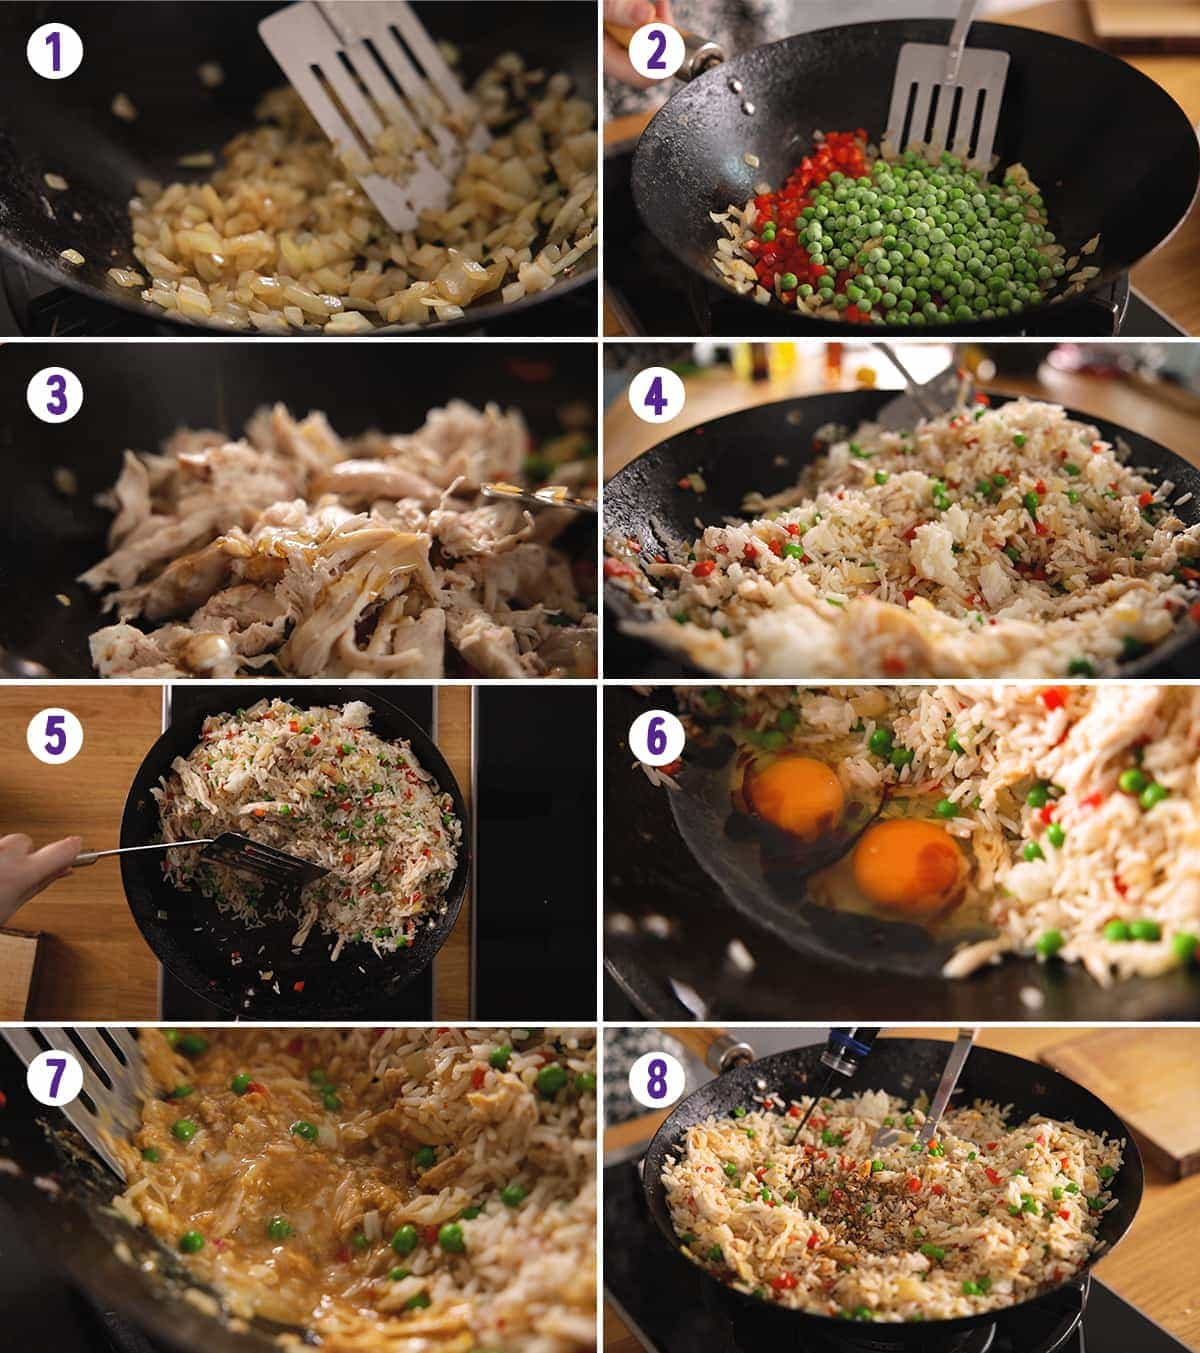 8 image collage showing how to make Chicken Fried Rice